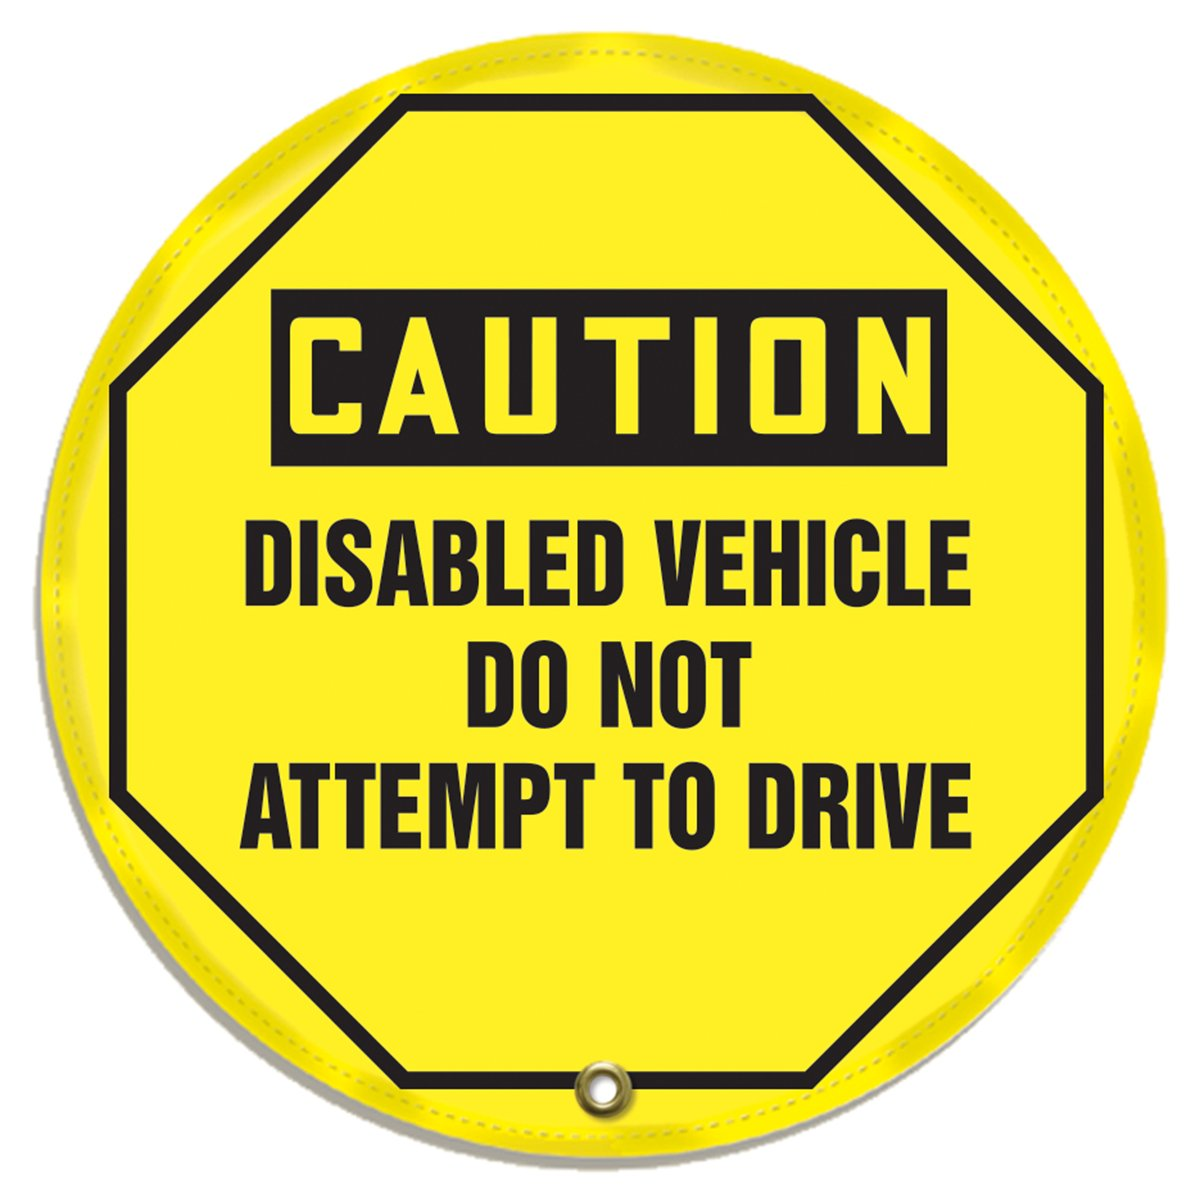 OSHA-Style LegendCaution Disabled Vehicle DO NOT Attempt to Drive 20 Diameter Accuform KDD823 STOPOUT Vinyl Steering Wheel Message Cover Black on Yellow